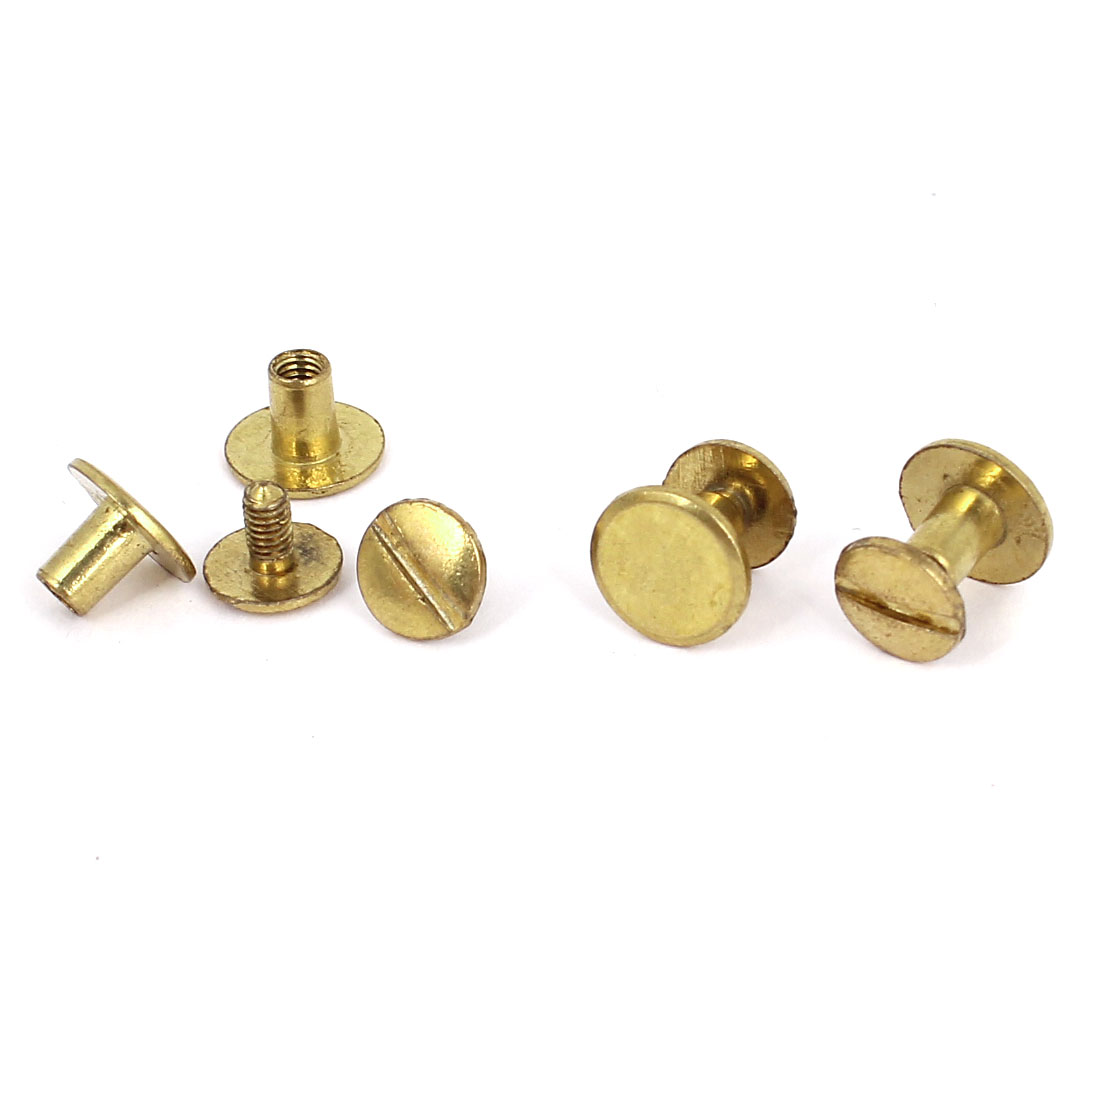 Brass Plated 4.5x7mm Binding Chicago Screw Post 4pcs for Albums Scrapbook